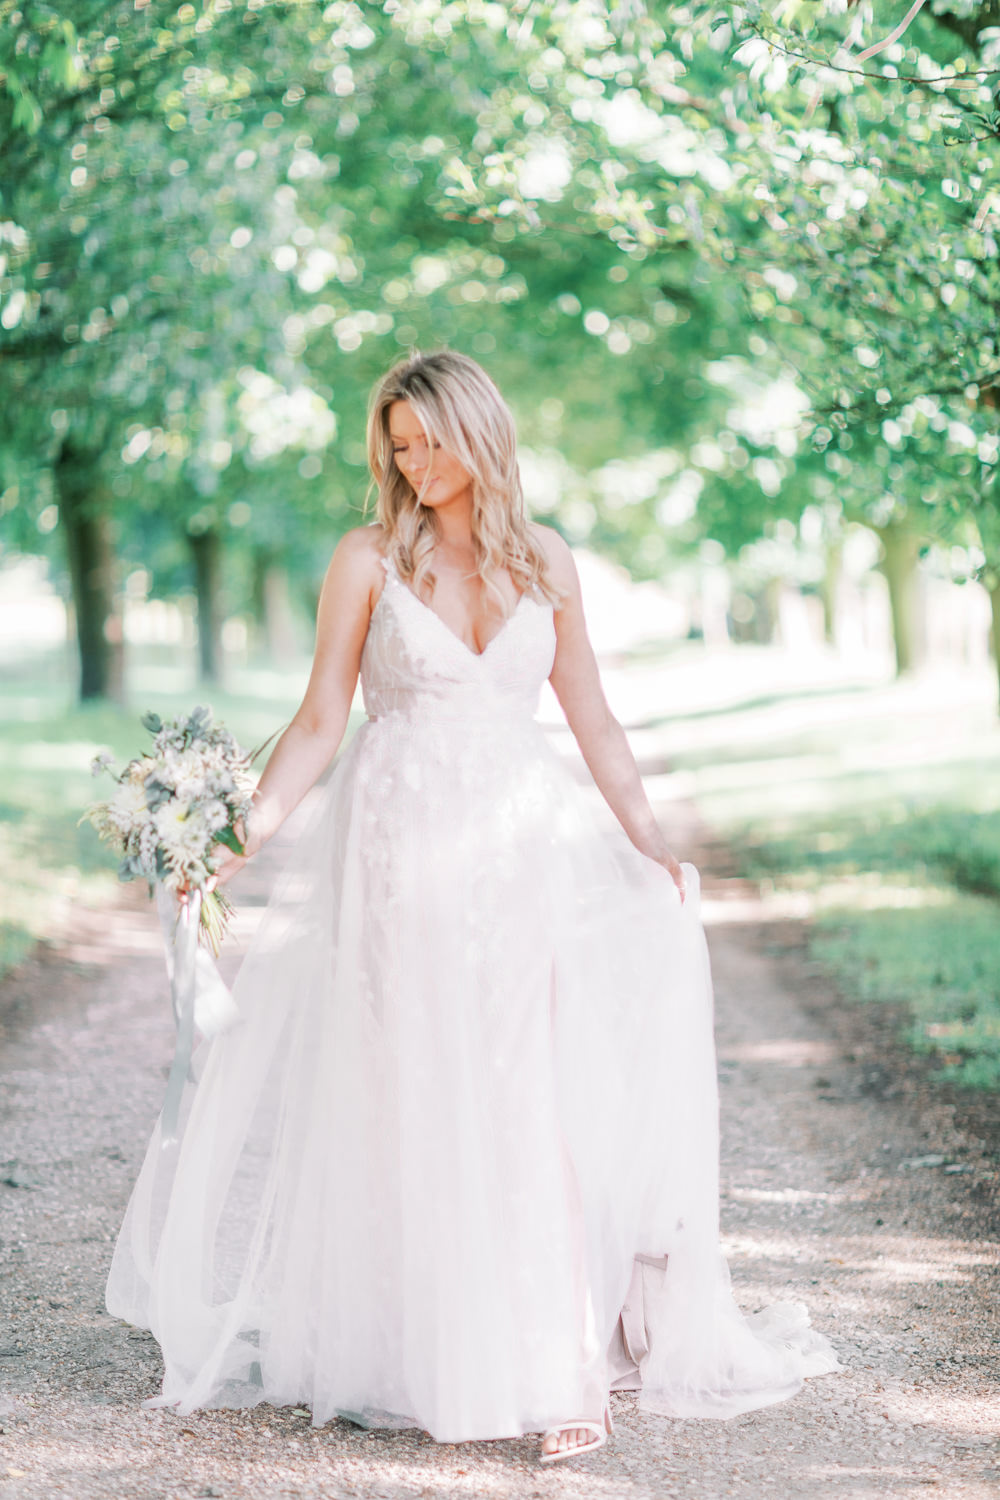 Dress Gown Bride Bridal Tulle Family Elopement Ideas Sophie May Photo